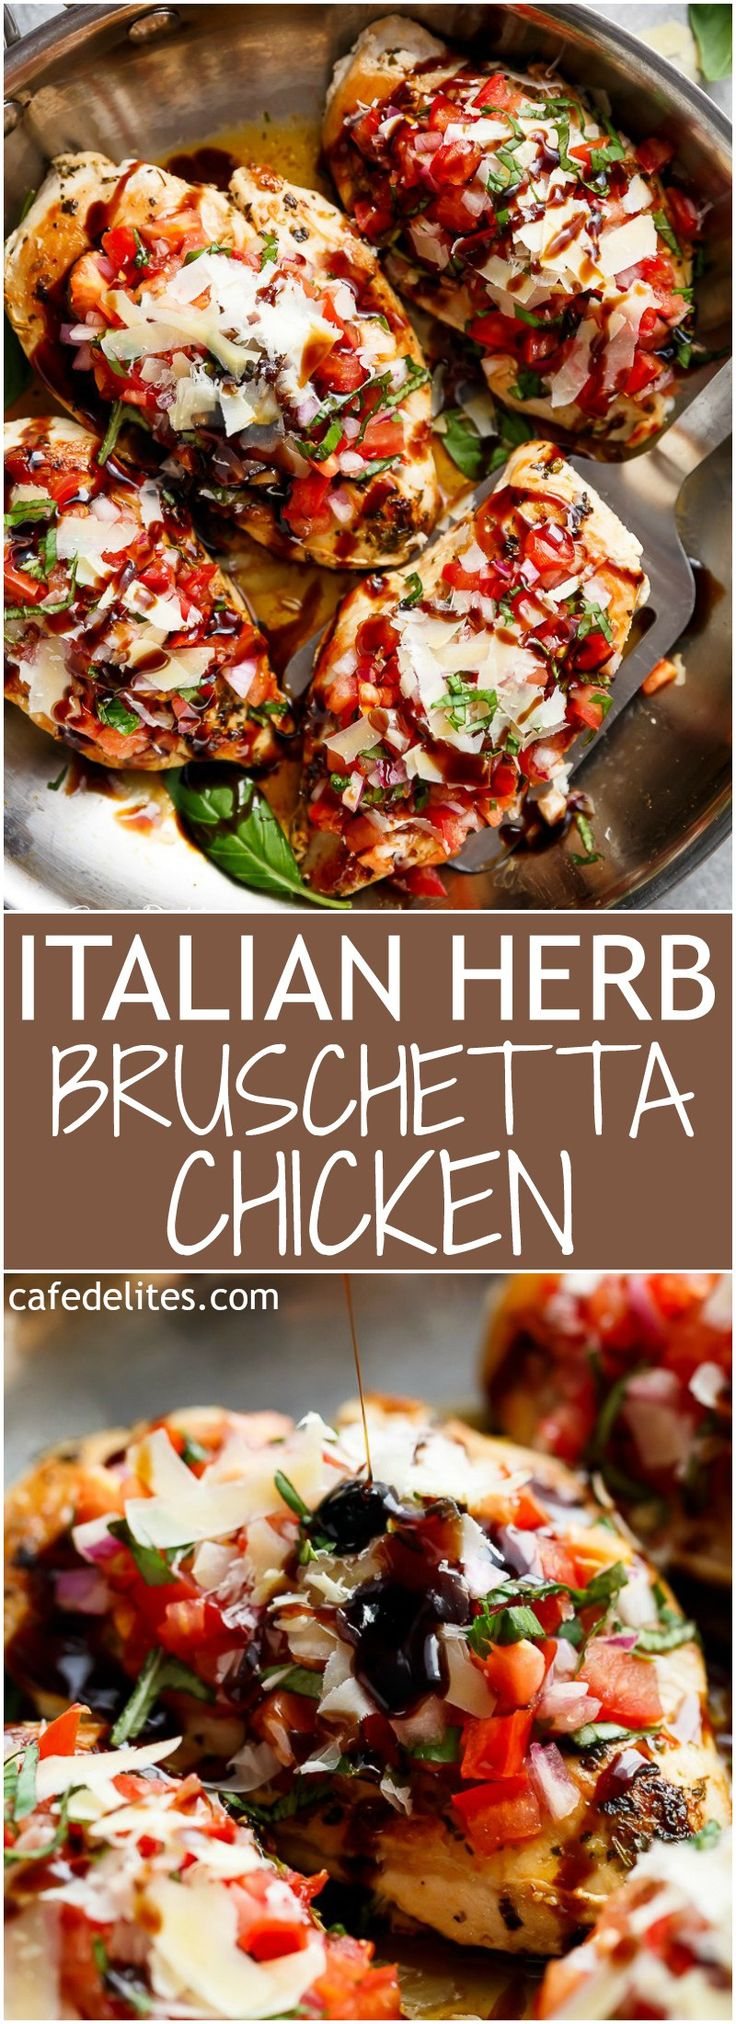 Italian Herb Bruschetta Chicken is a low carb alternative to a traditional Bruschetta! Transform ordinary chicken into a delicious, flavourful meal! | https://cafedelites.com